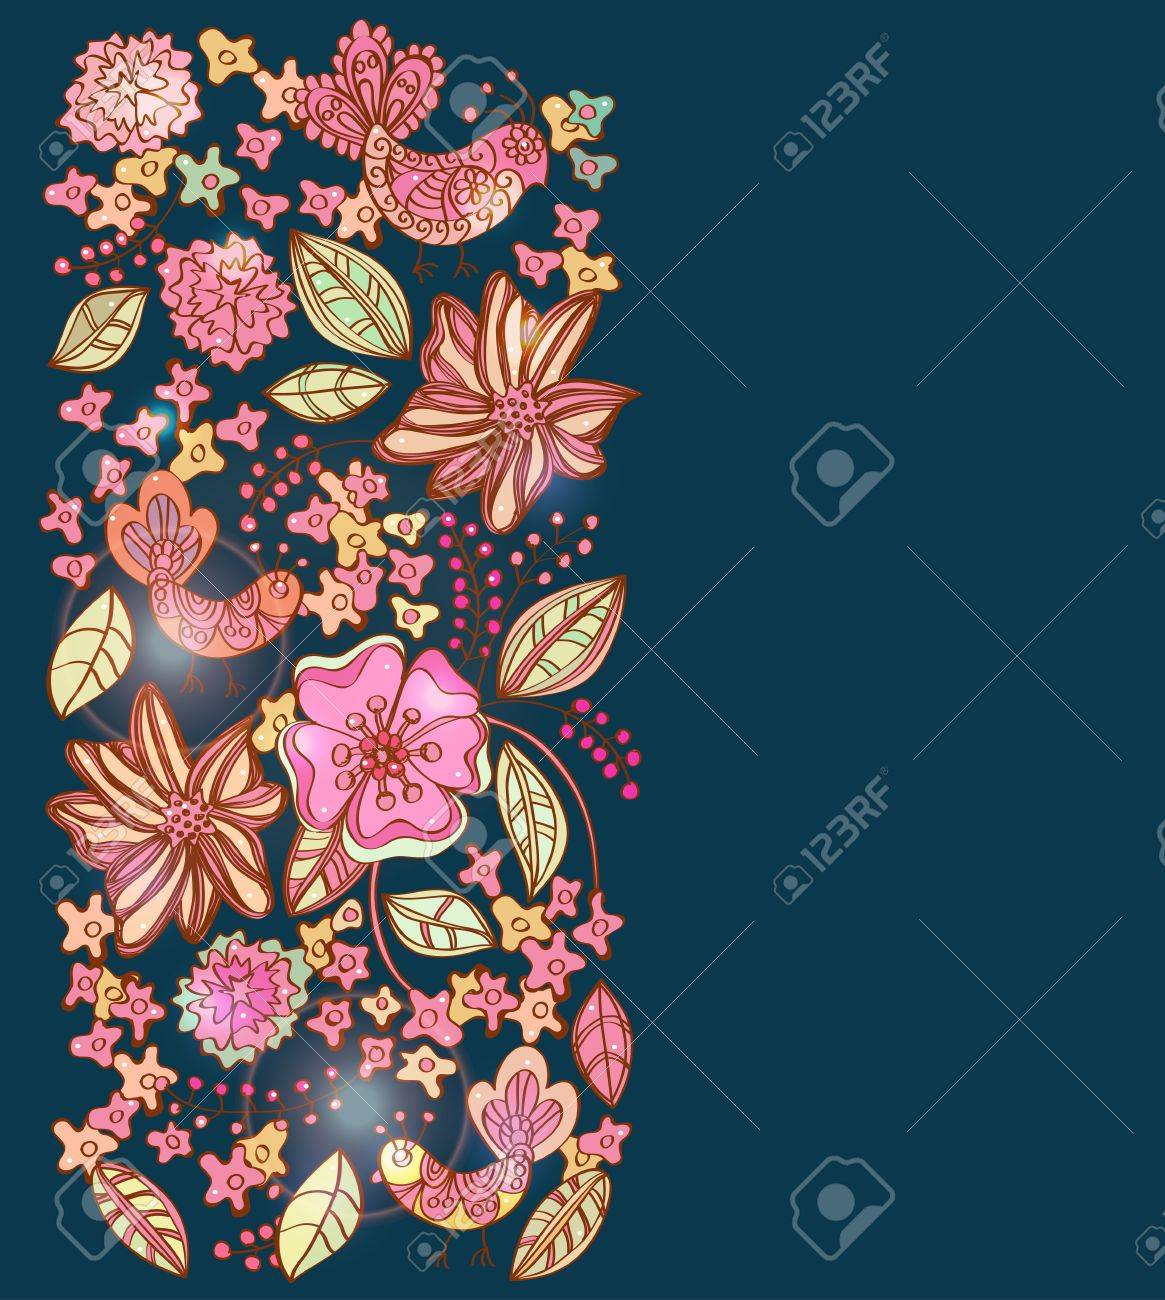 Beautiful vertical colorful floral background with birds, illustration Stock Vector - 12496197